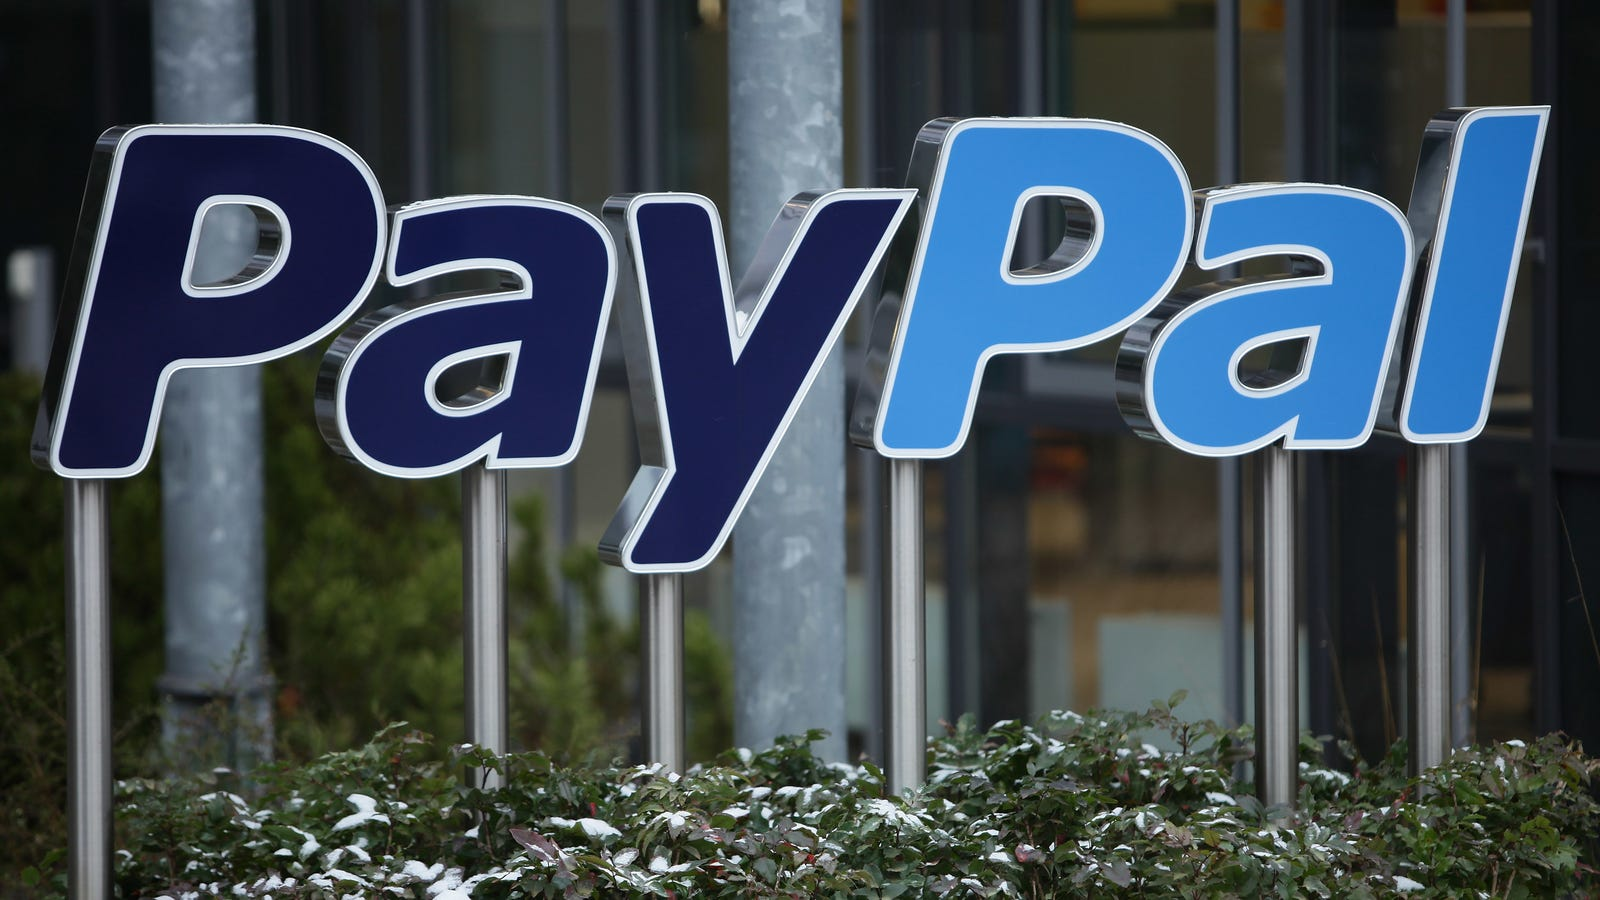 PayPal Drops Support for Facebook's Libra Cryptocurrency Scheme